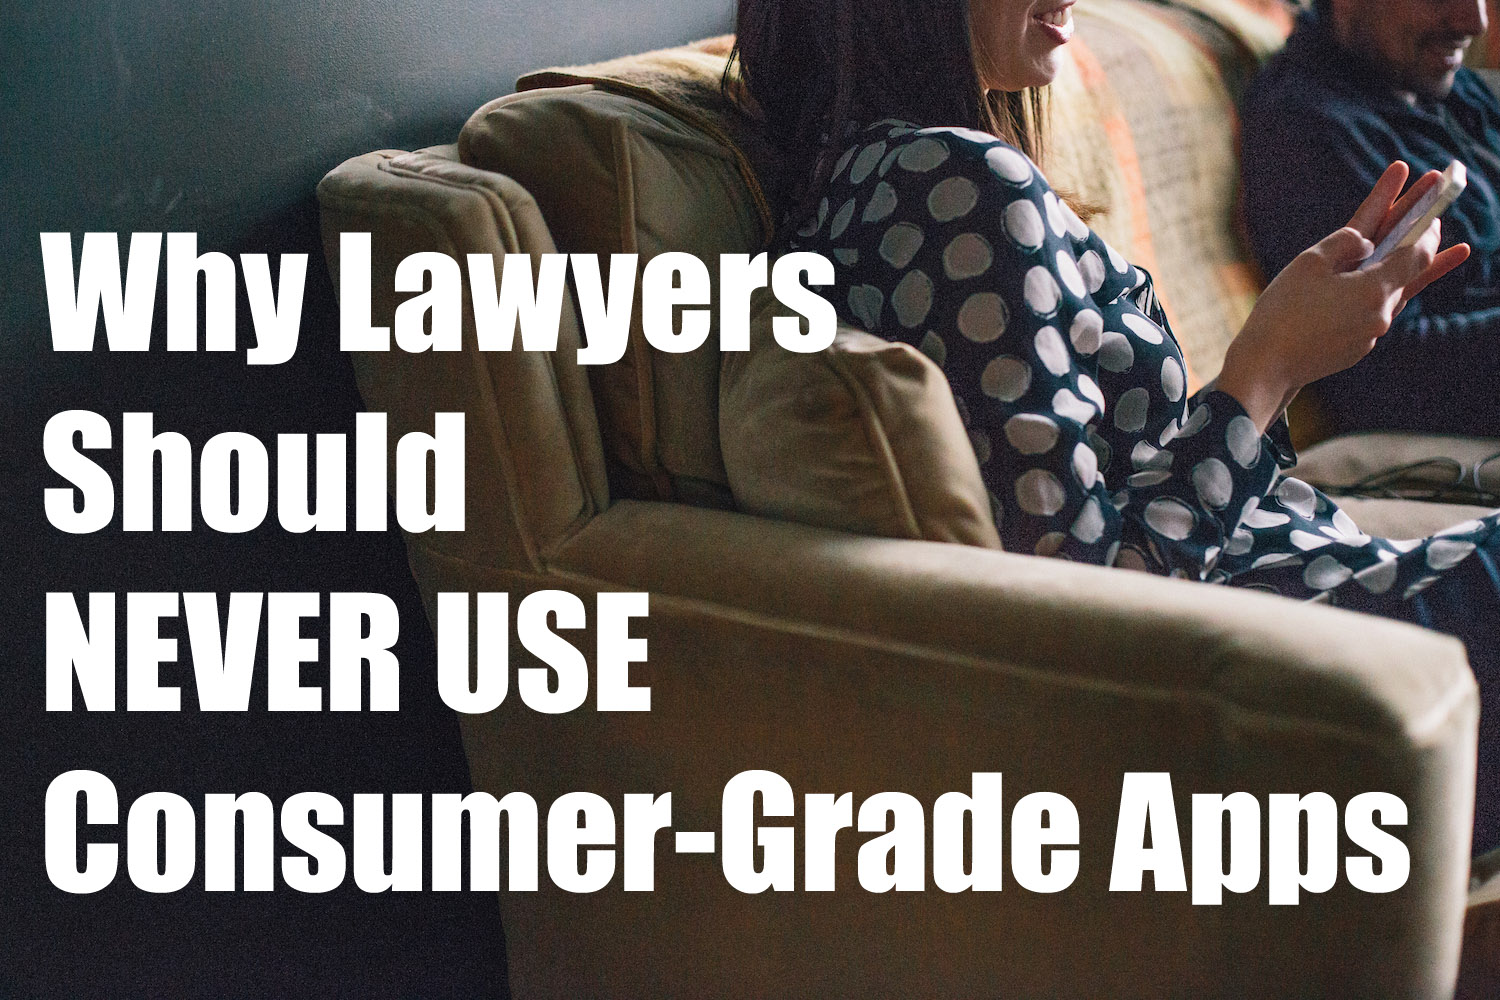 Why Lawyers Should NEVER Use Consumer-Grade Apps